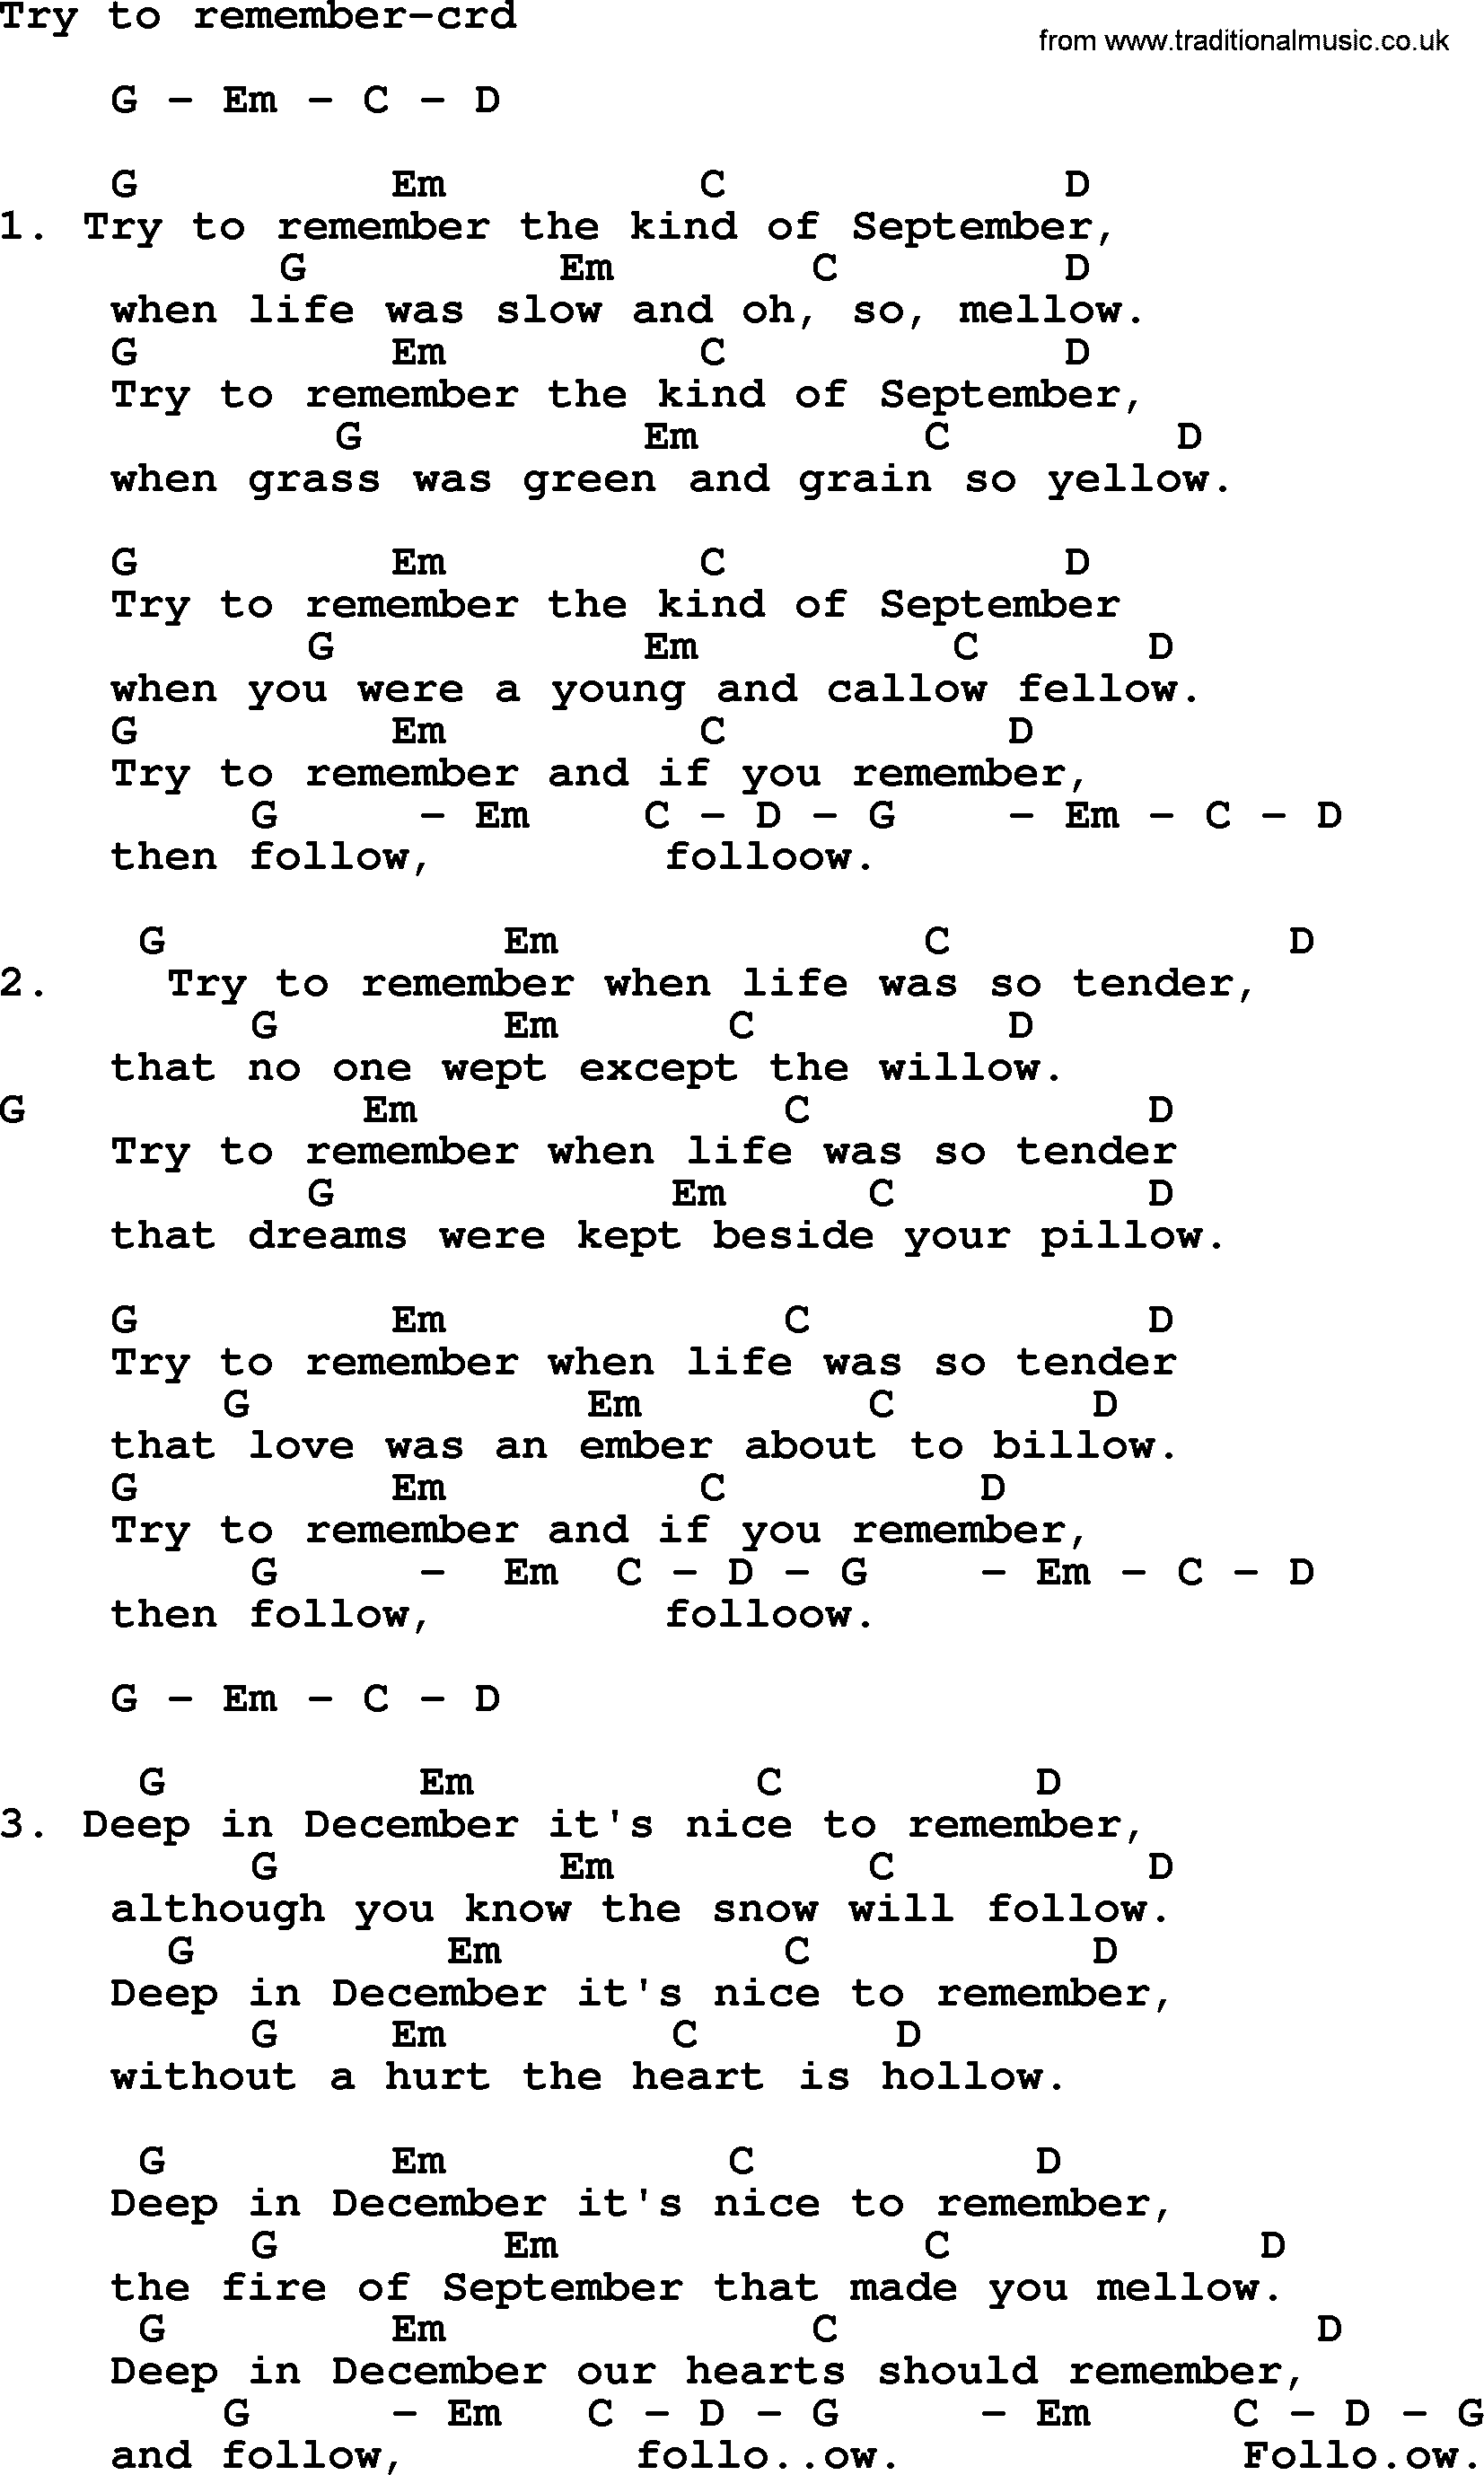 Kingston trio song try to remember lyrics and chords kingston trio song try to remember lyrics and chords hexwebz Image collections